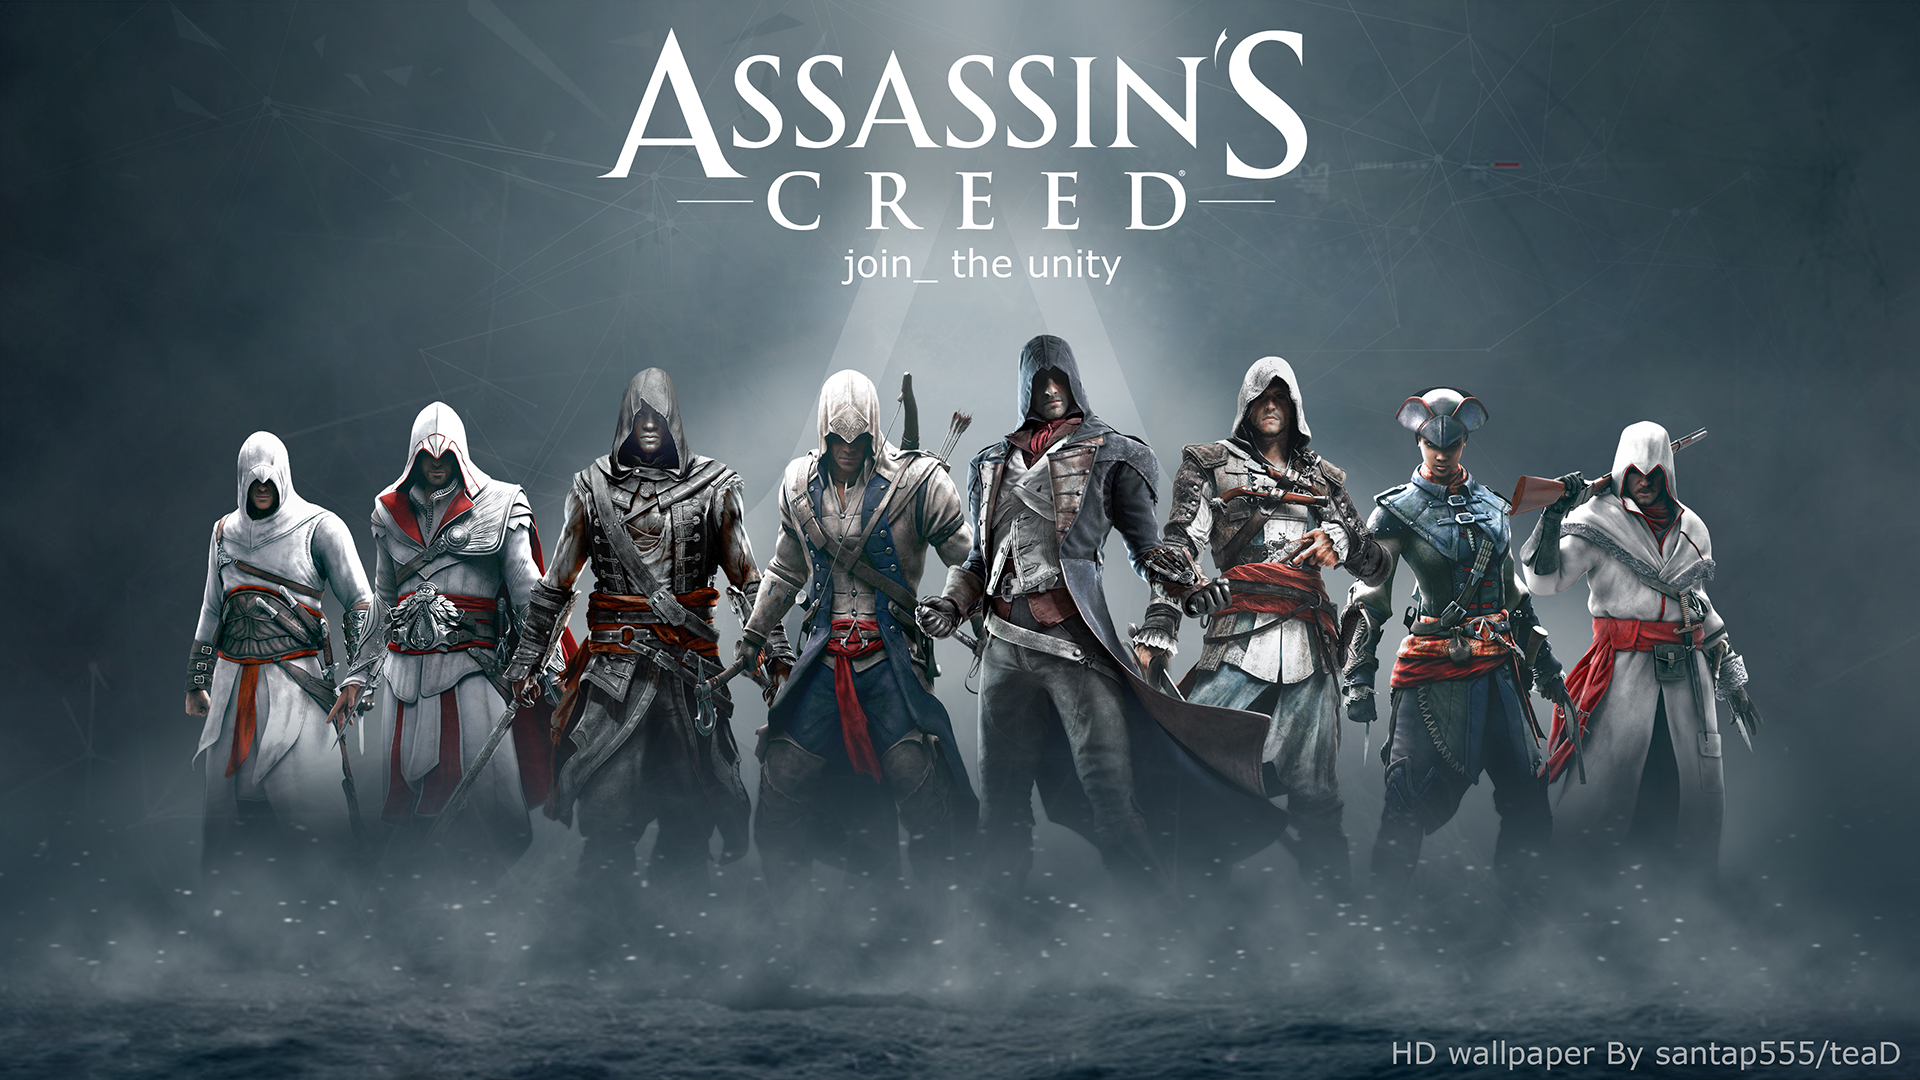 Assassins Creed Wallpaper Images Is Cool Wallpapers